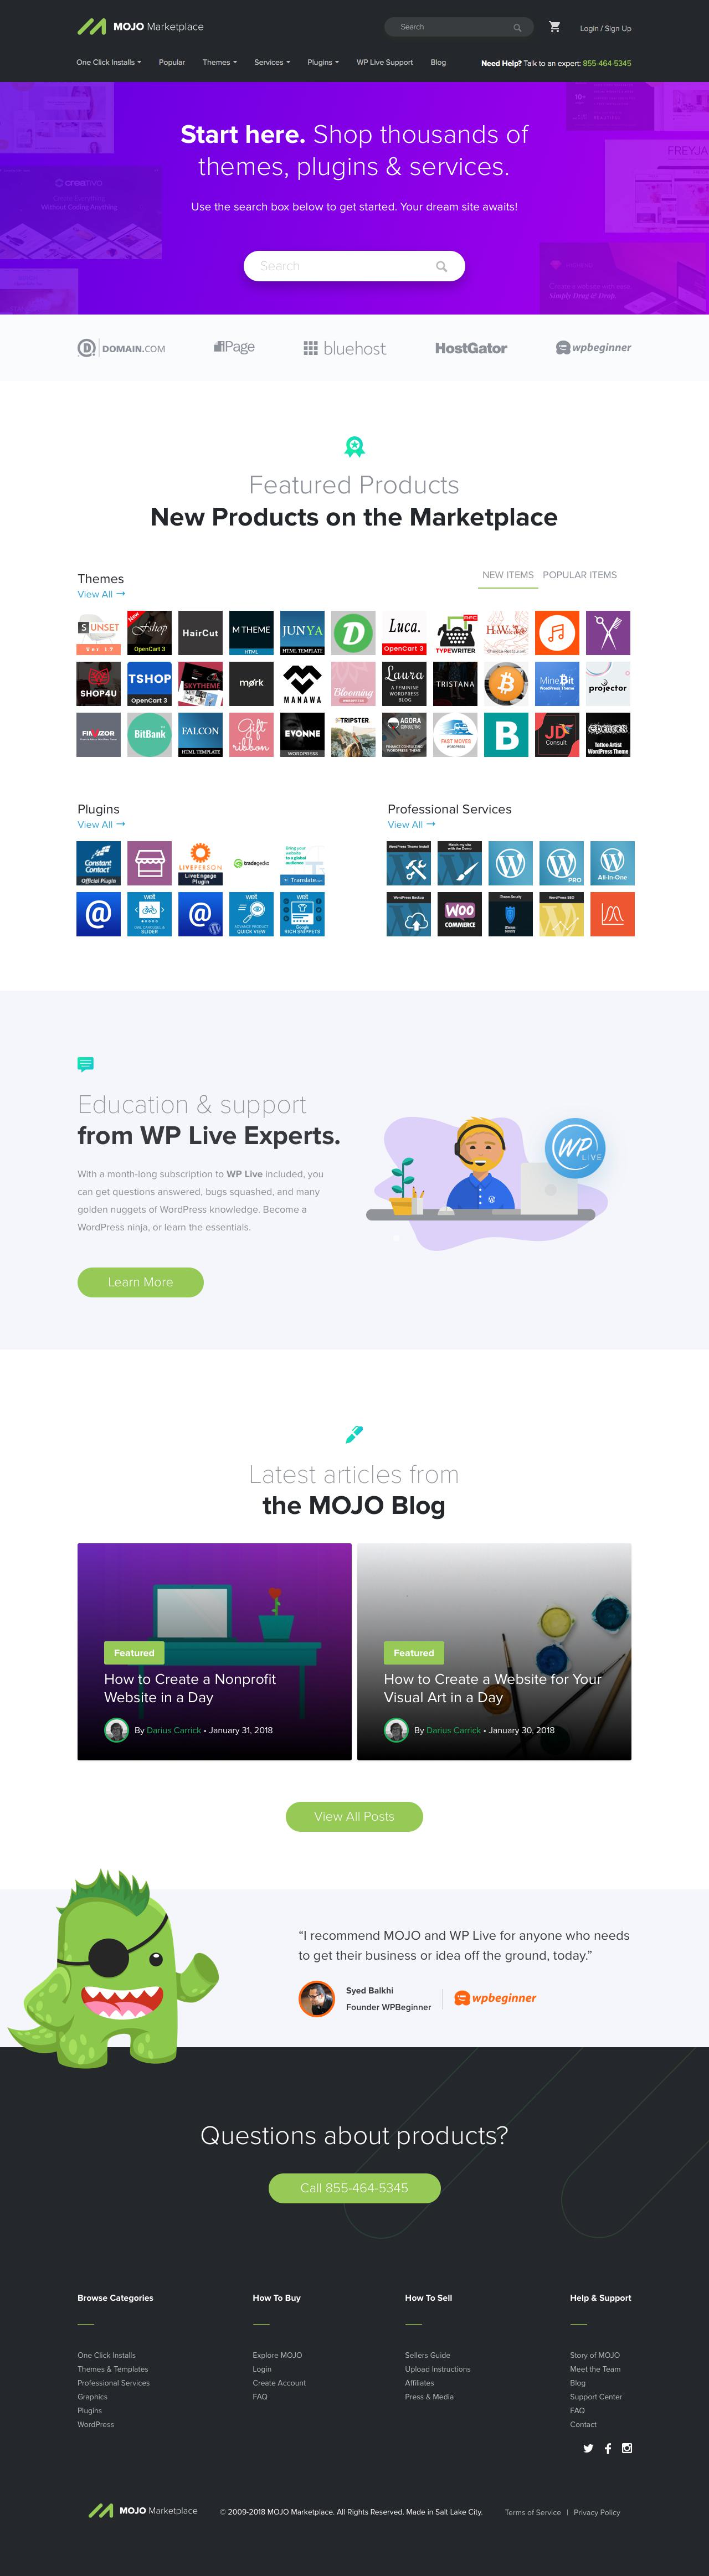 Screenshot of mojomarketplace.com - MOJO Marketplace - Website Themes, Services, Plugins & Support - captured March 17, 2018